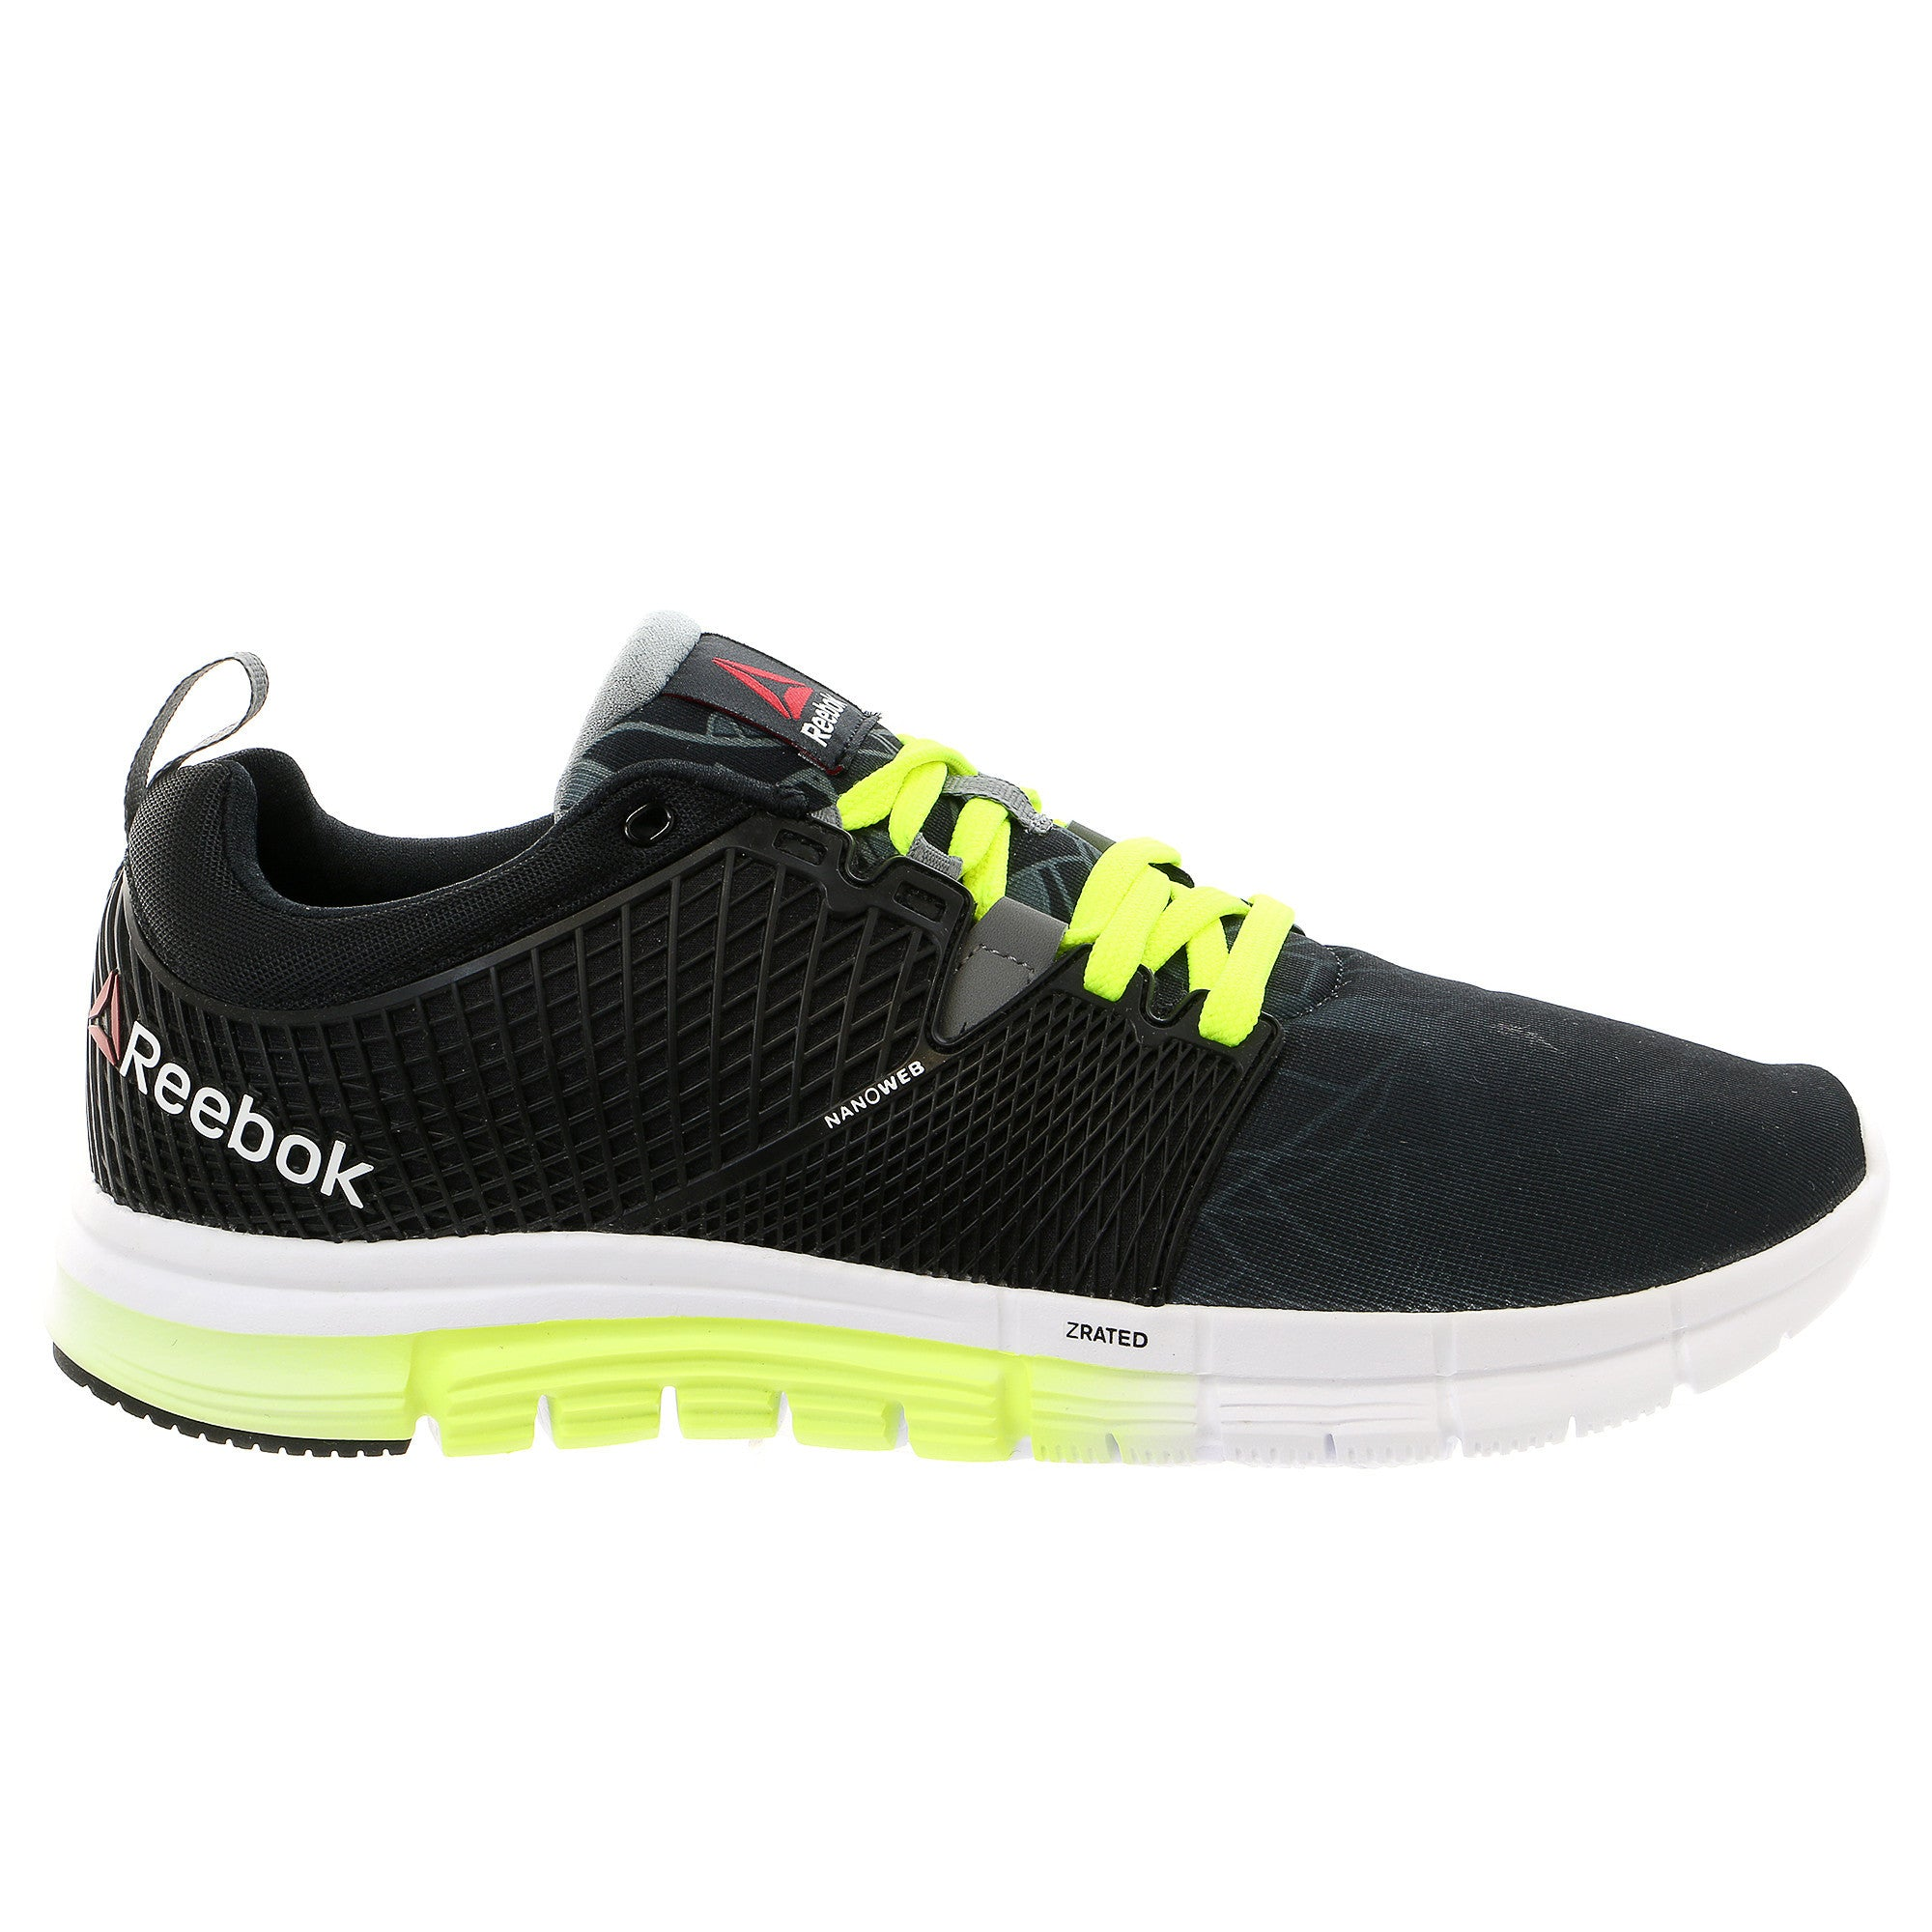 Reebok Zquick Dash City Running Sneaker Shoe - Mens - Shoplifestyle 115a1bc41